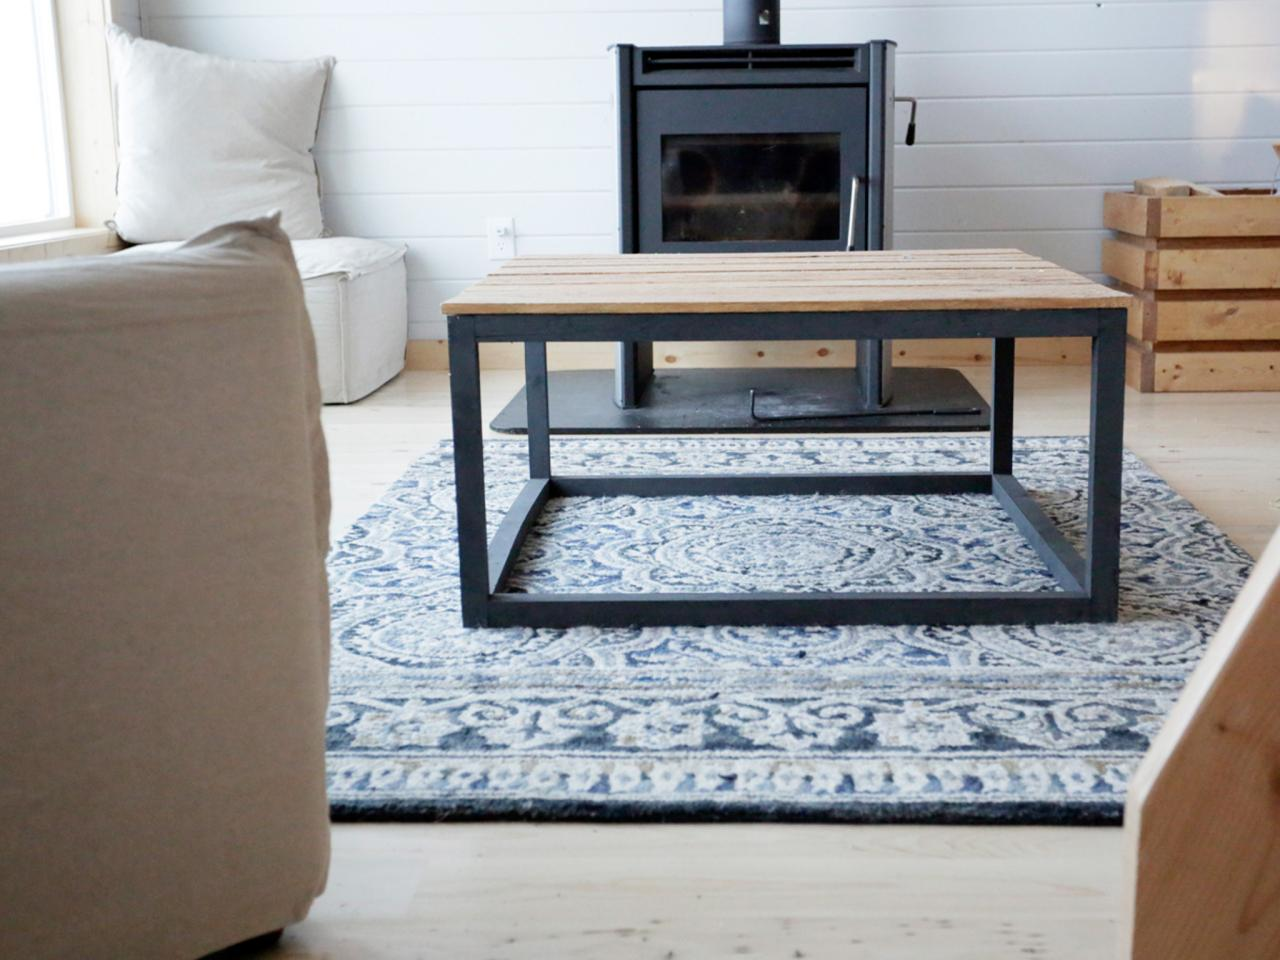 How to Build a Modern Industrial Coffee Table howtos DIY